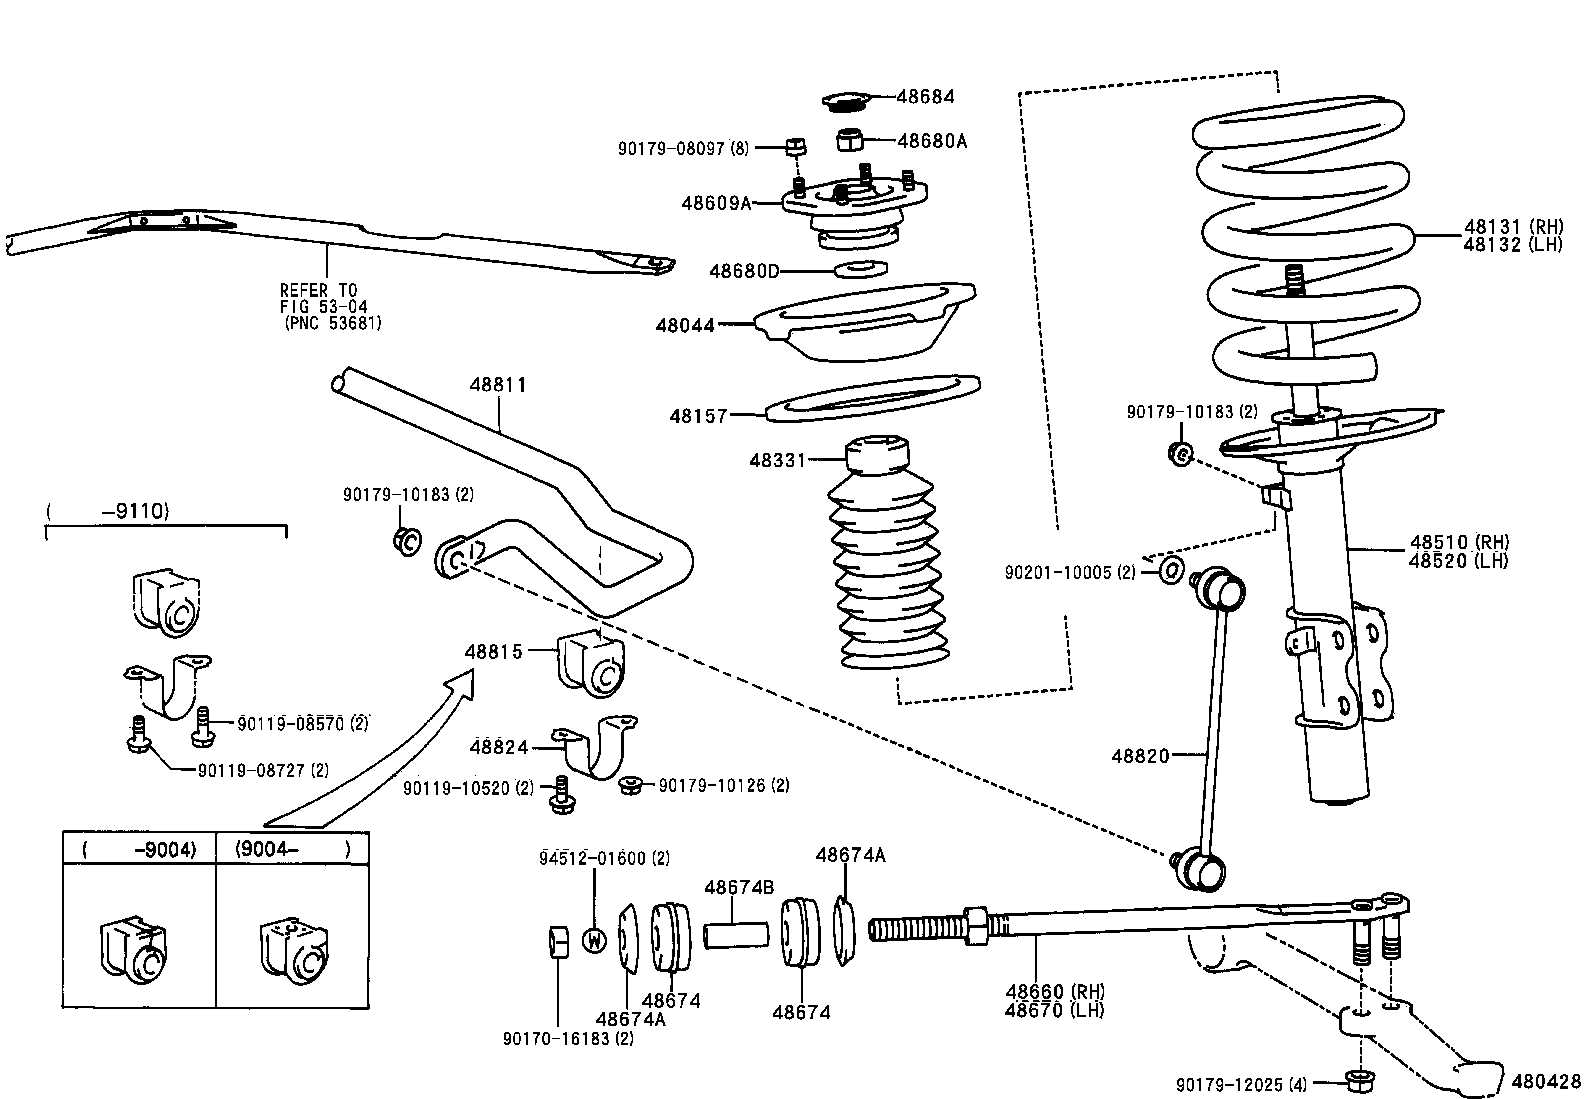 1991 Toyota Mr2 Rear Suspension Diagram Schematic Diagrams Camry Parts Diy Enthusiasts Wiring U2022 2001